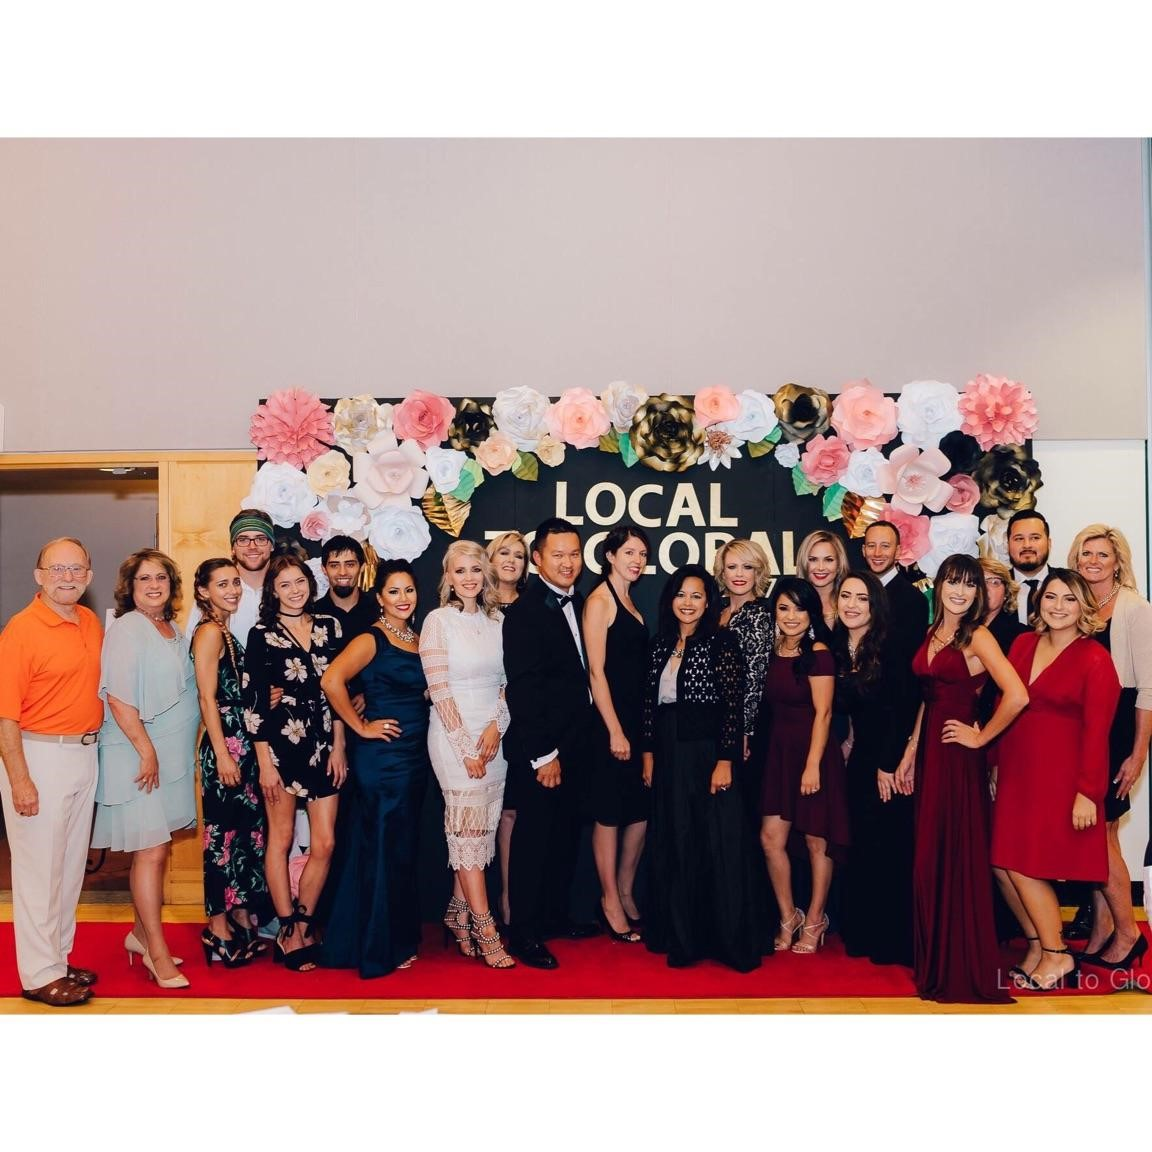 The Local to Global Gala focused on raising awareness and funds to work against human sex trafficking.